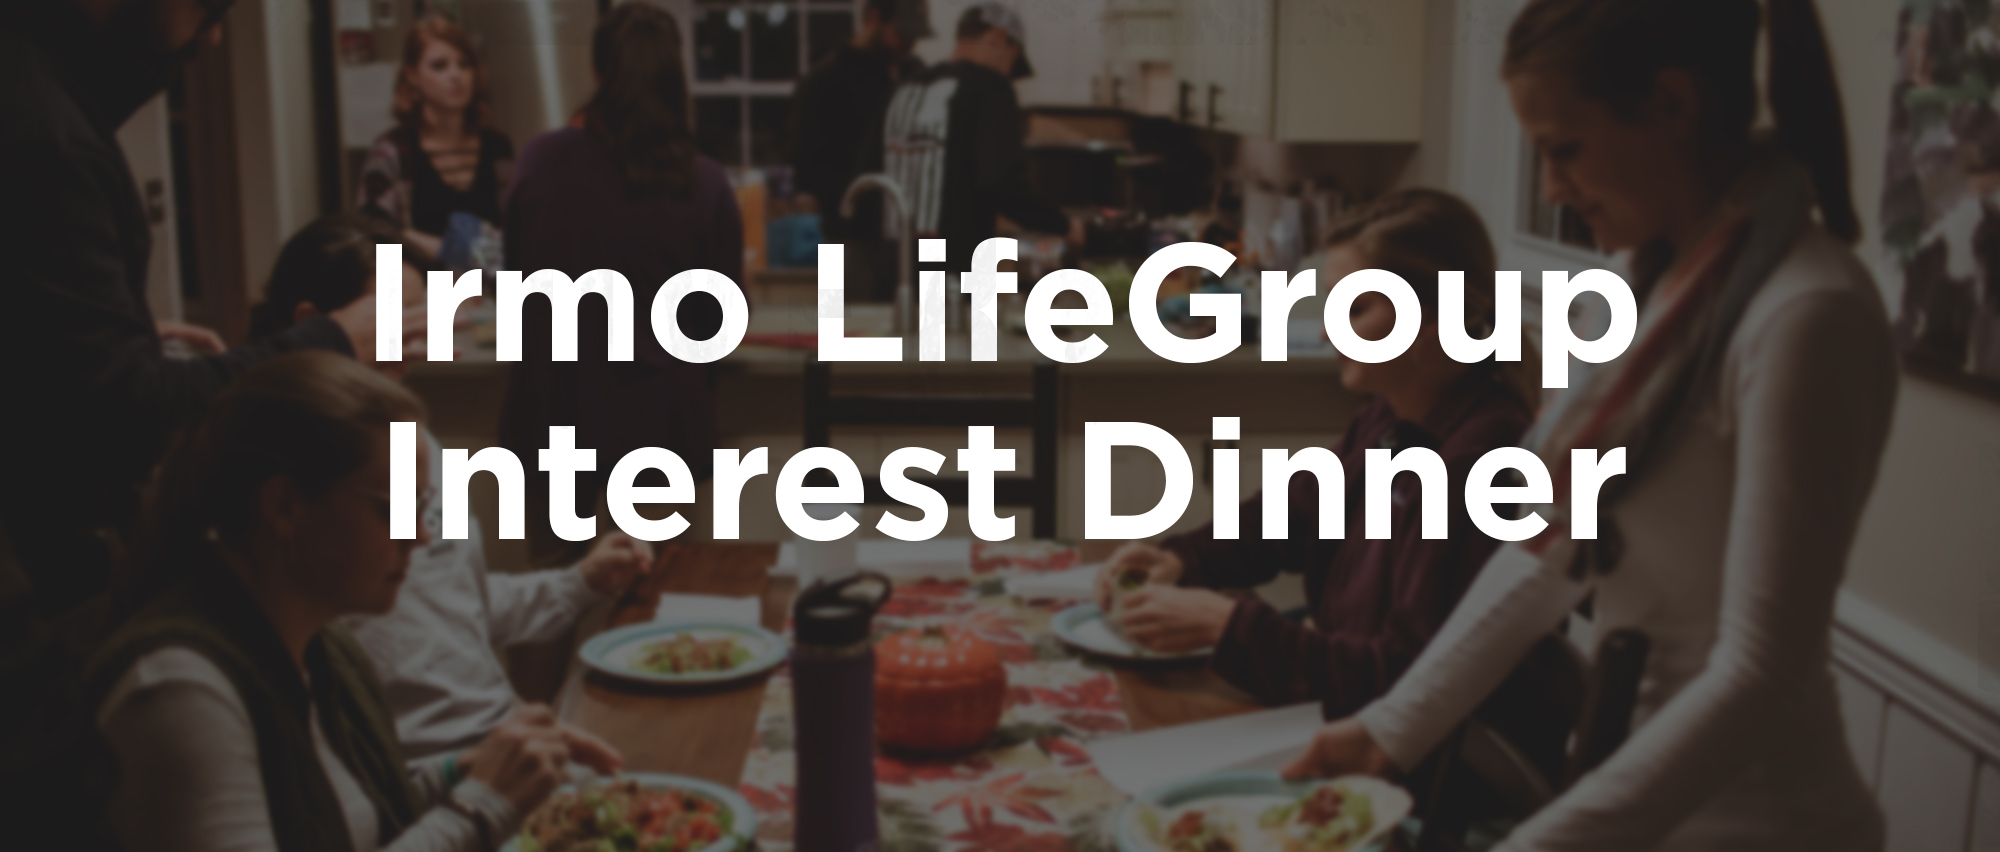 Live in the Irmo or Chapin area? We want to plant a LifeGroup in the area and would love to have you join us for an interest dinner. We'll provide the food so just rsvp and show up!